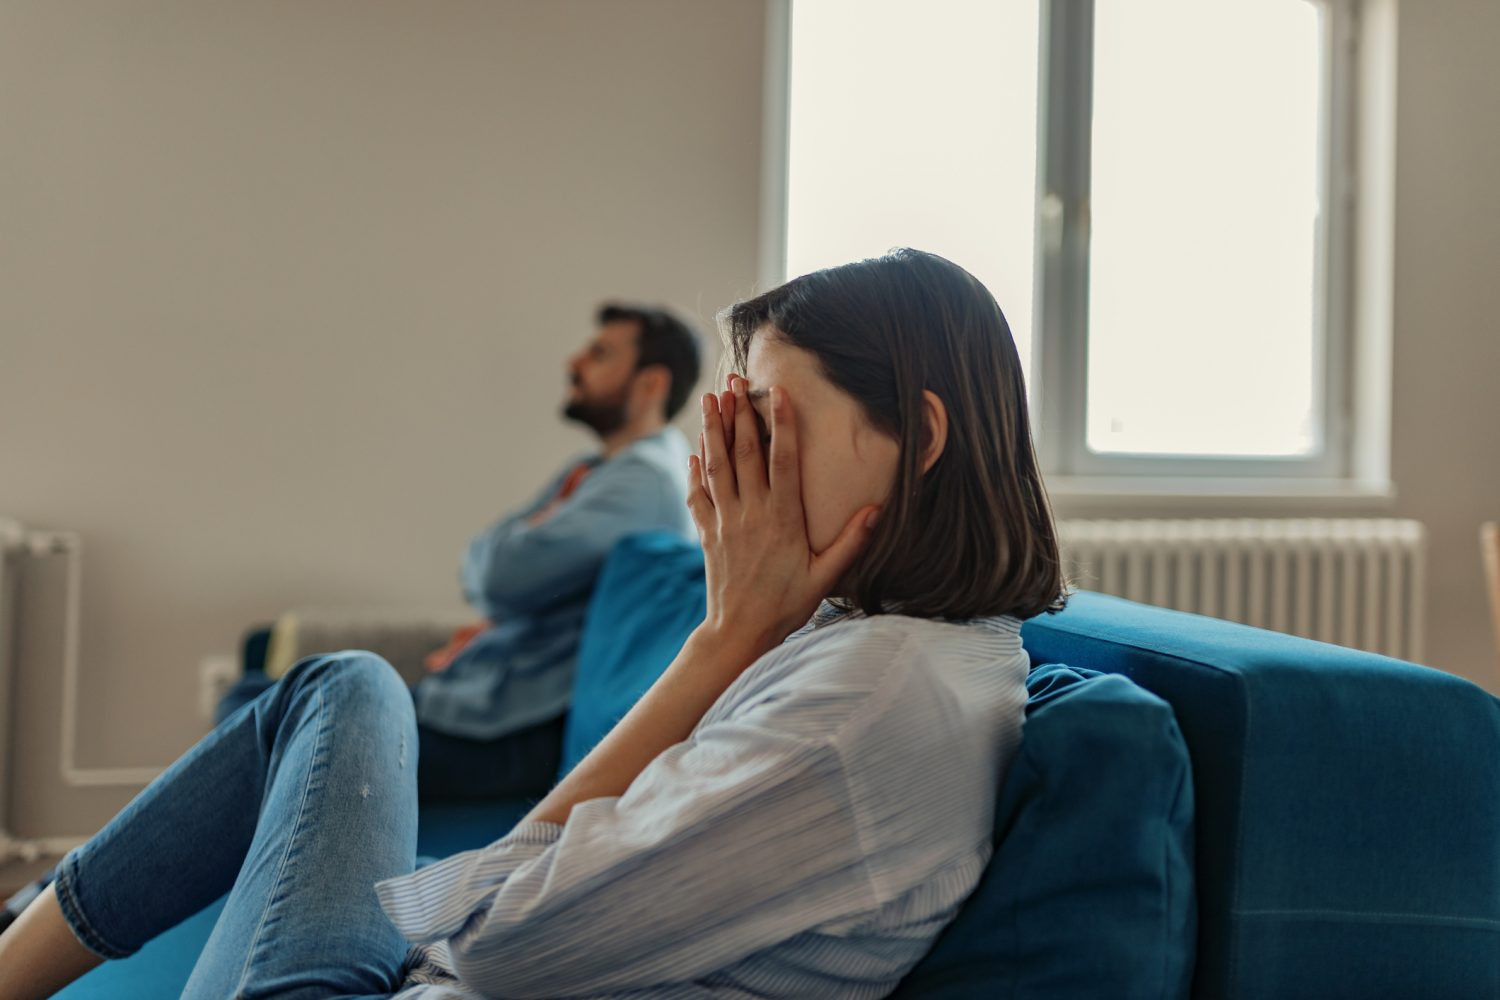 Unhappy Couple After an Argument sitting on the couch in the living room